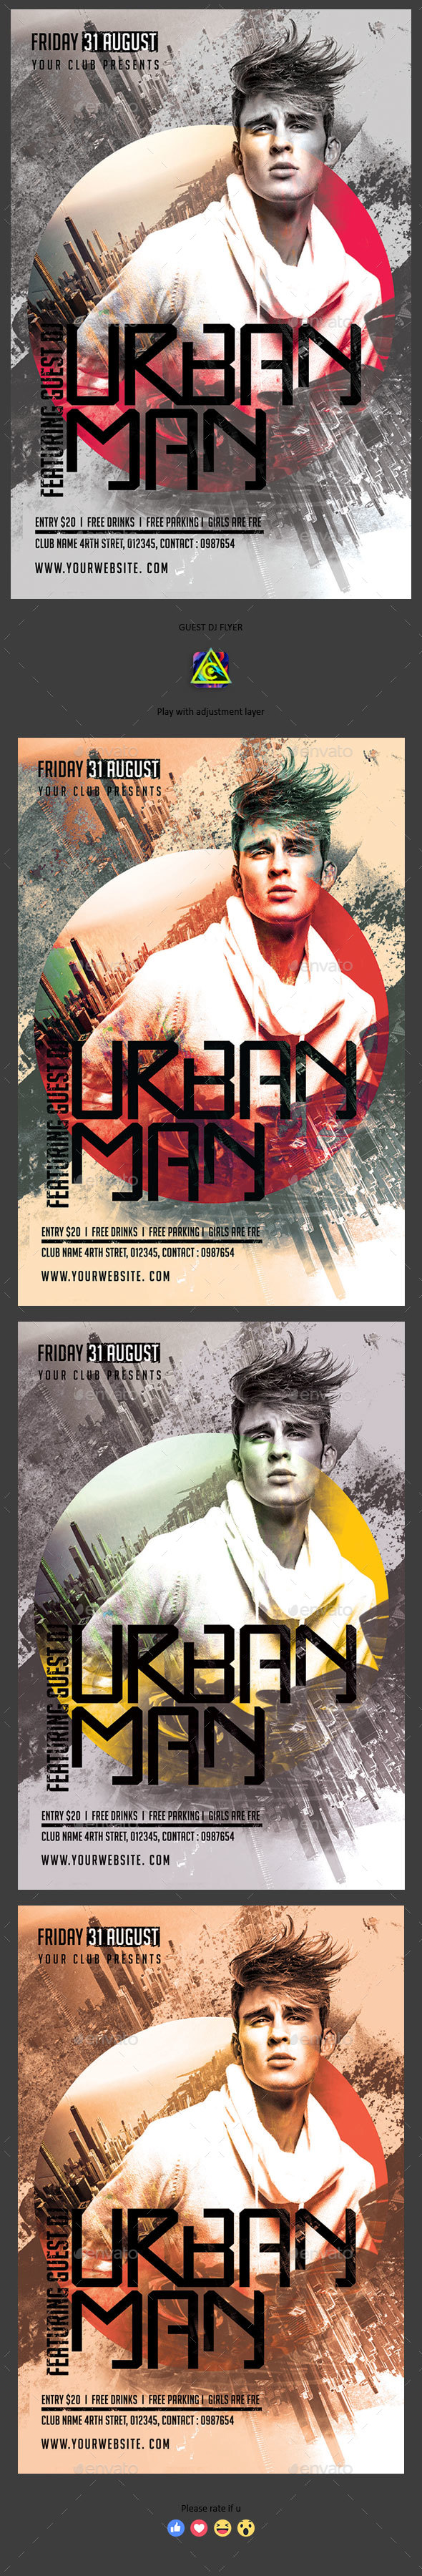 Urban Man Flyer - Clubs & Parties Events